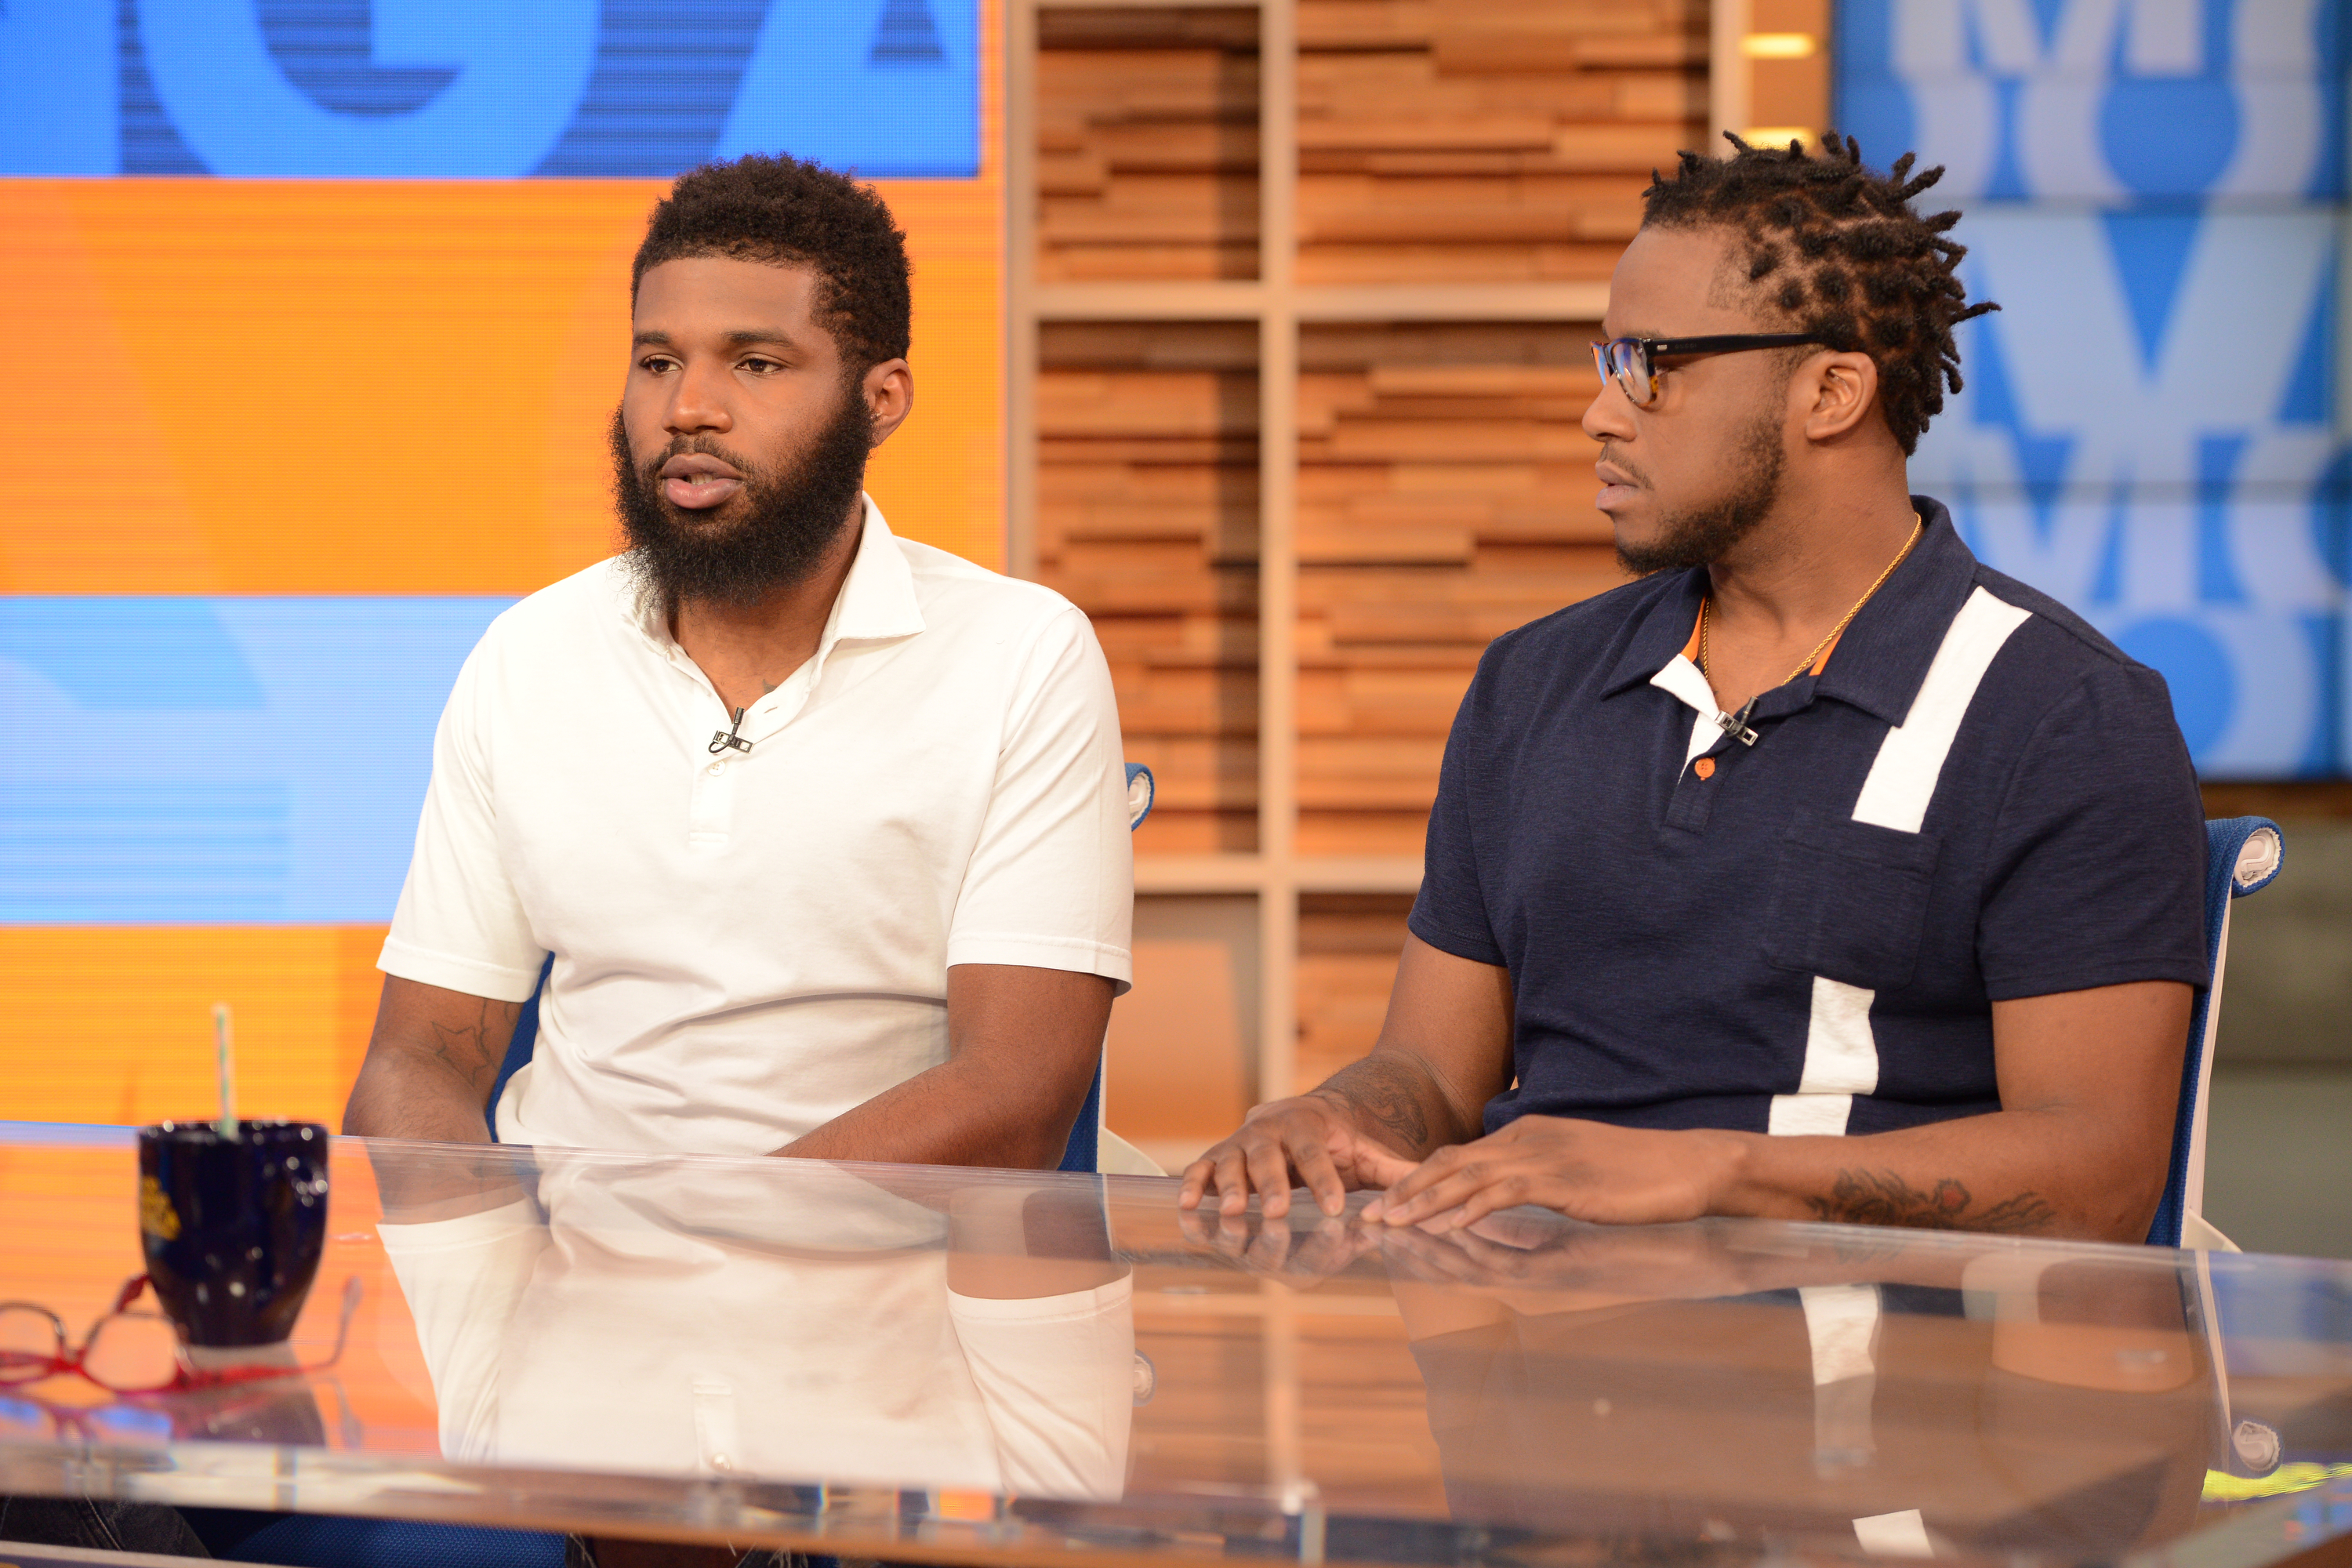 """Rashon Nelson and Donte Robinson, the two men arrested at a Starbucks in Philadelphia, tell their story on """"Good Morning America"""" on ABC."""